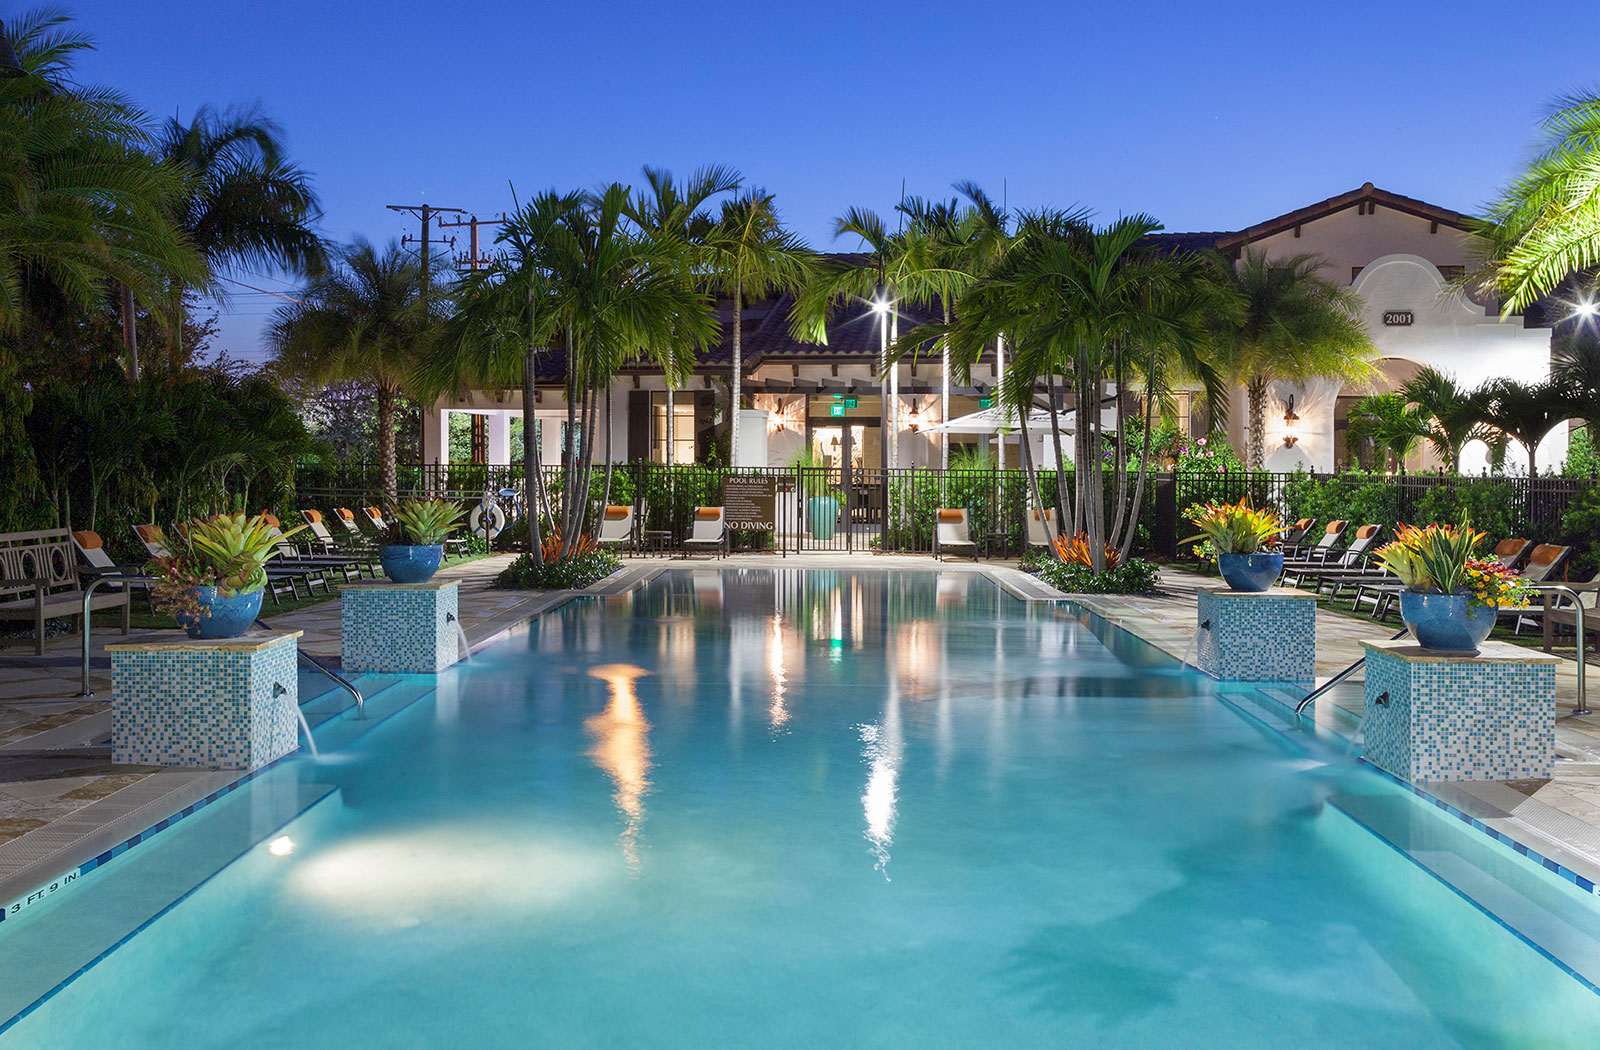 images Delray beach